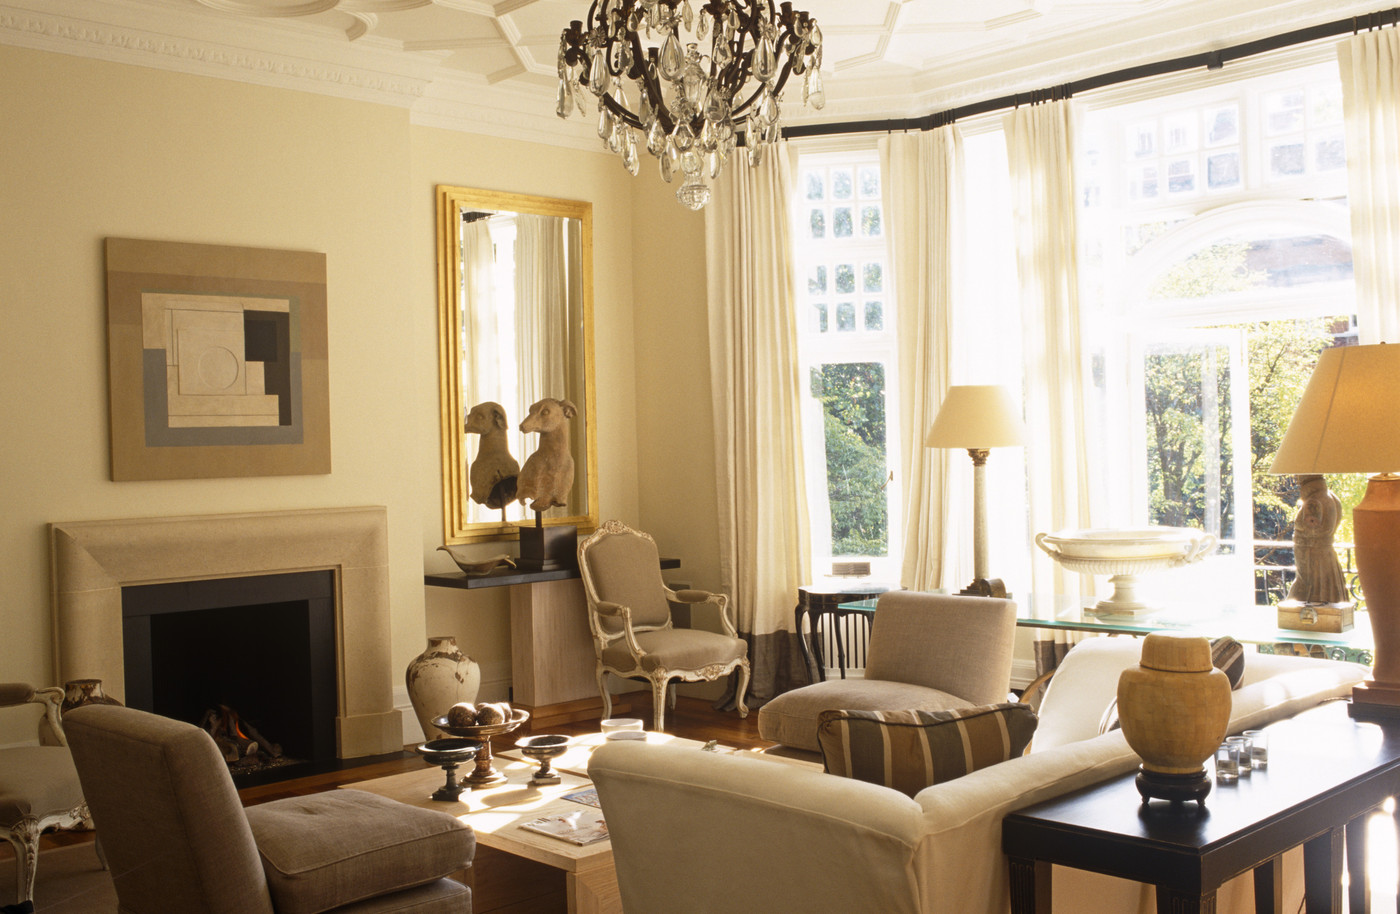 pictures of beige living rooms beige traditional photos 530 of 847 19538